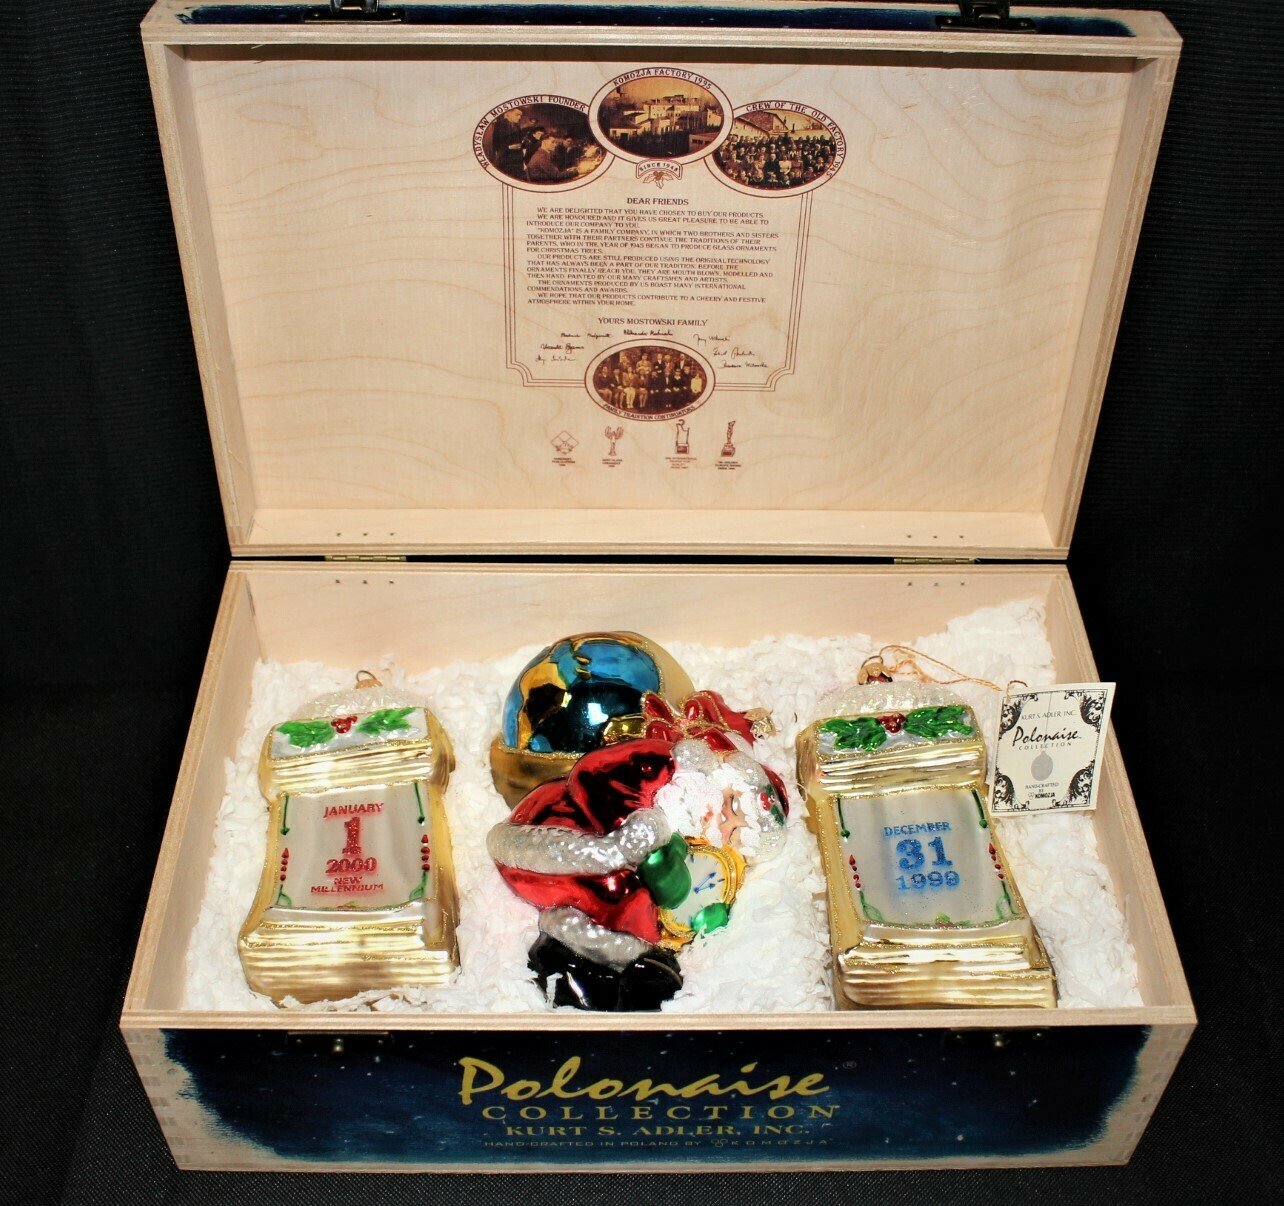 Polonaise Collection Millennium 2000 Glass Ornaments by Kurt S. Alder in Wood Box